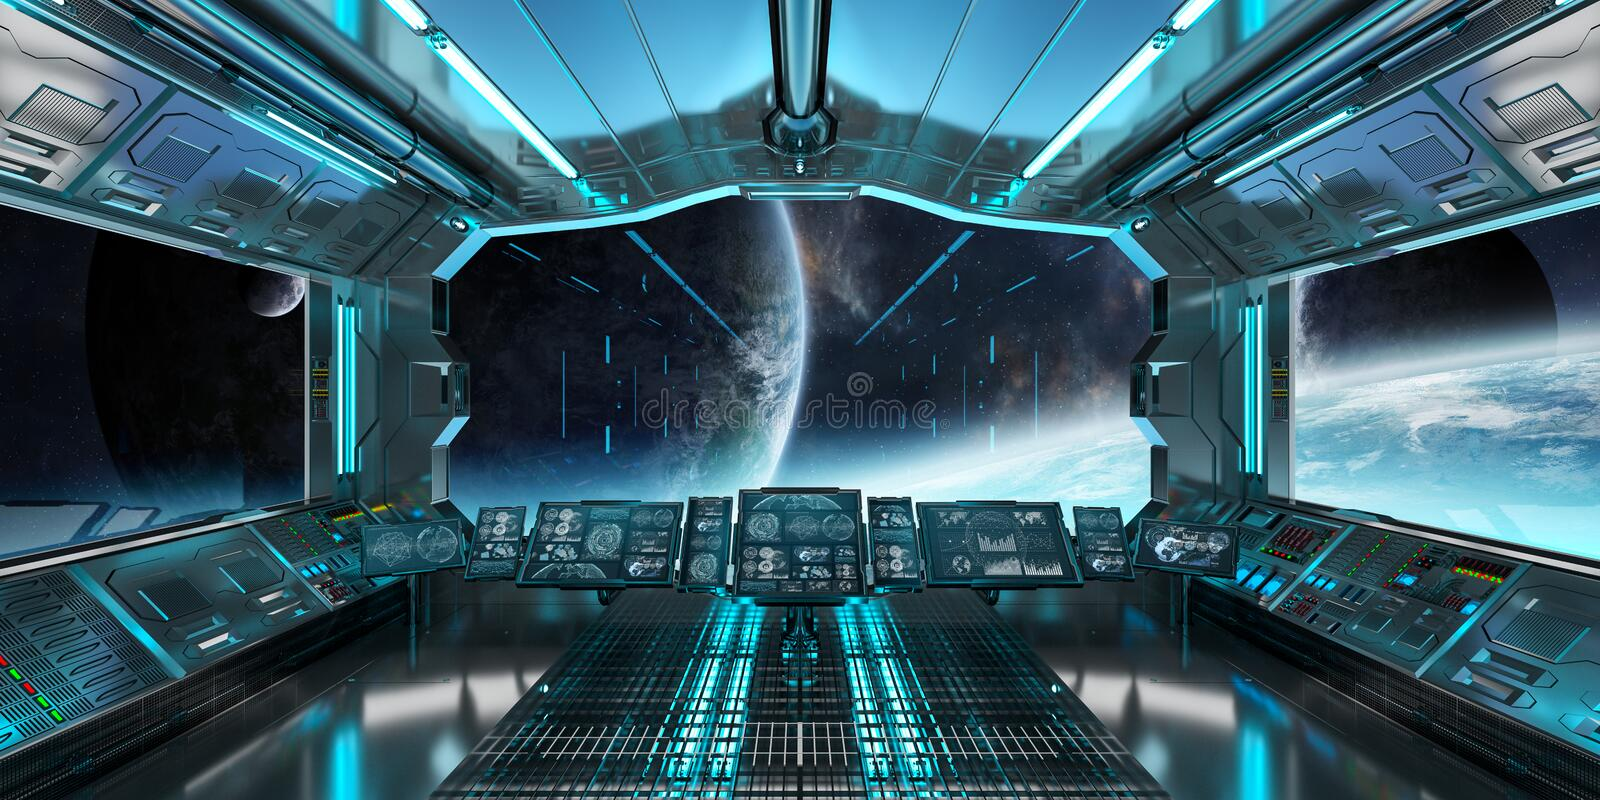 spaceship interior with view on distant planets system 3d render stock illustration. Black Bedroom Furniture Sets. Home Design Ideas